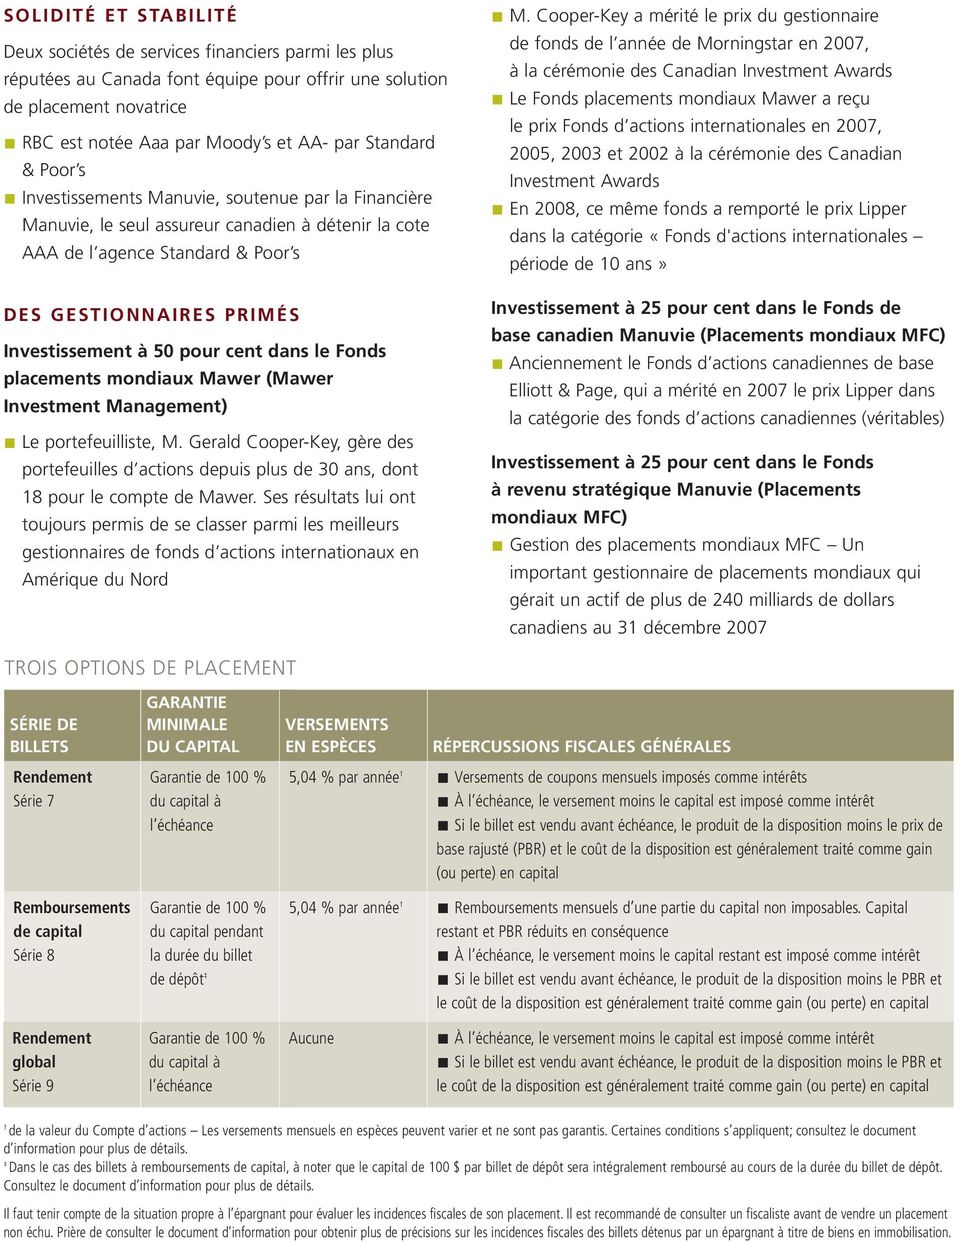 50 pour cent dans le Fonds placements mondiaux Mawer (Mawer Investment Management) Le portefeuilliste, M.